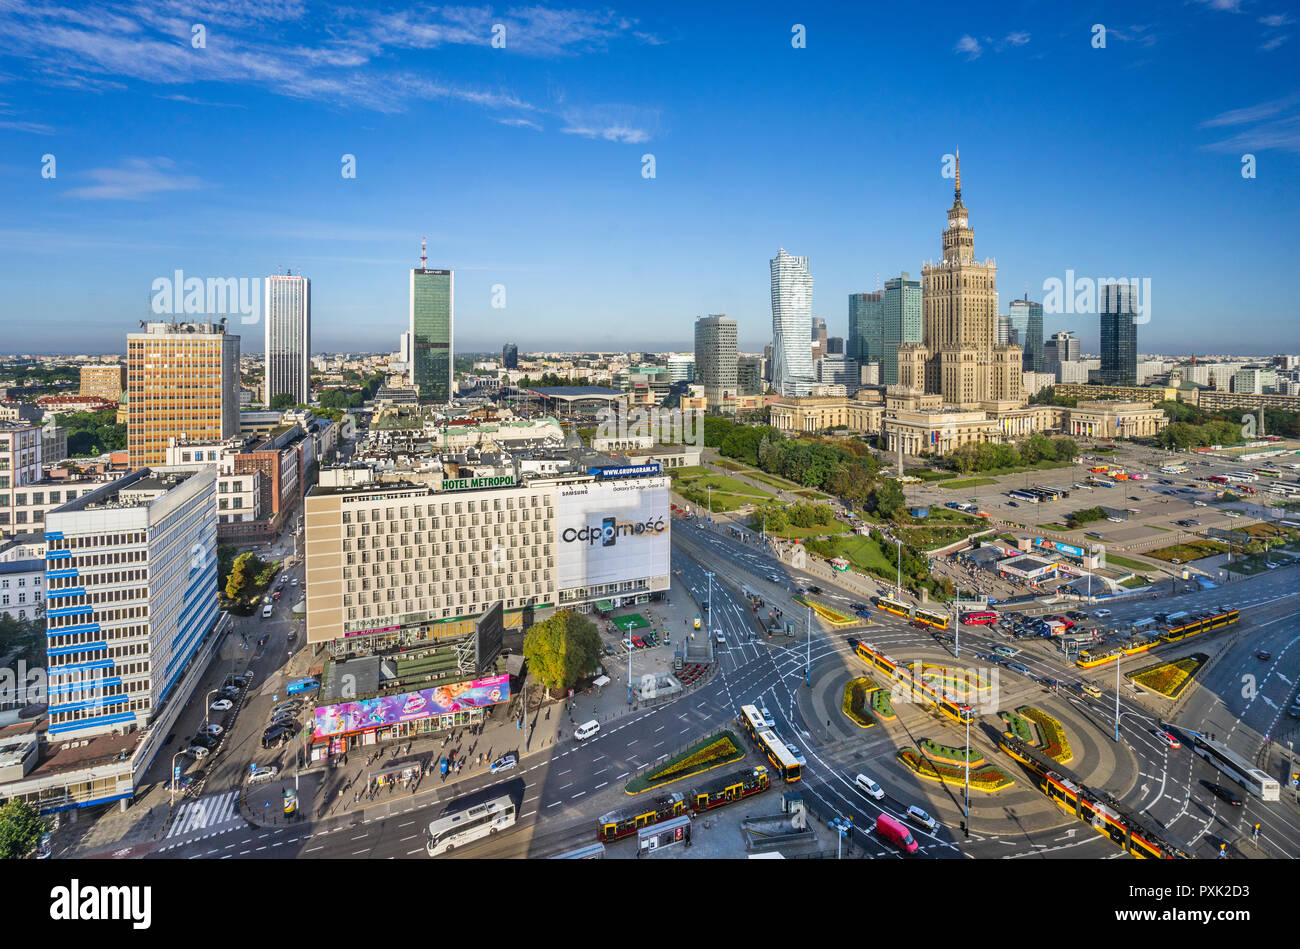 Warsaw Centrum, aerial view of the very heart of the polish capital, with Rondo Dmowskiego roundabout, the Neomodern Warsaw Spire and the Russian Wedi - Stock Image